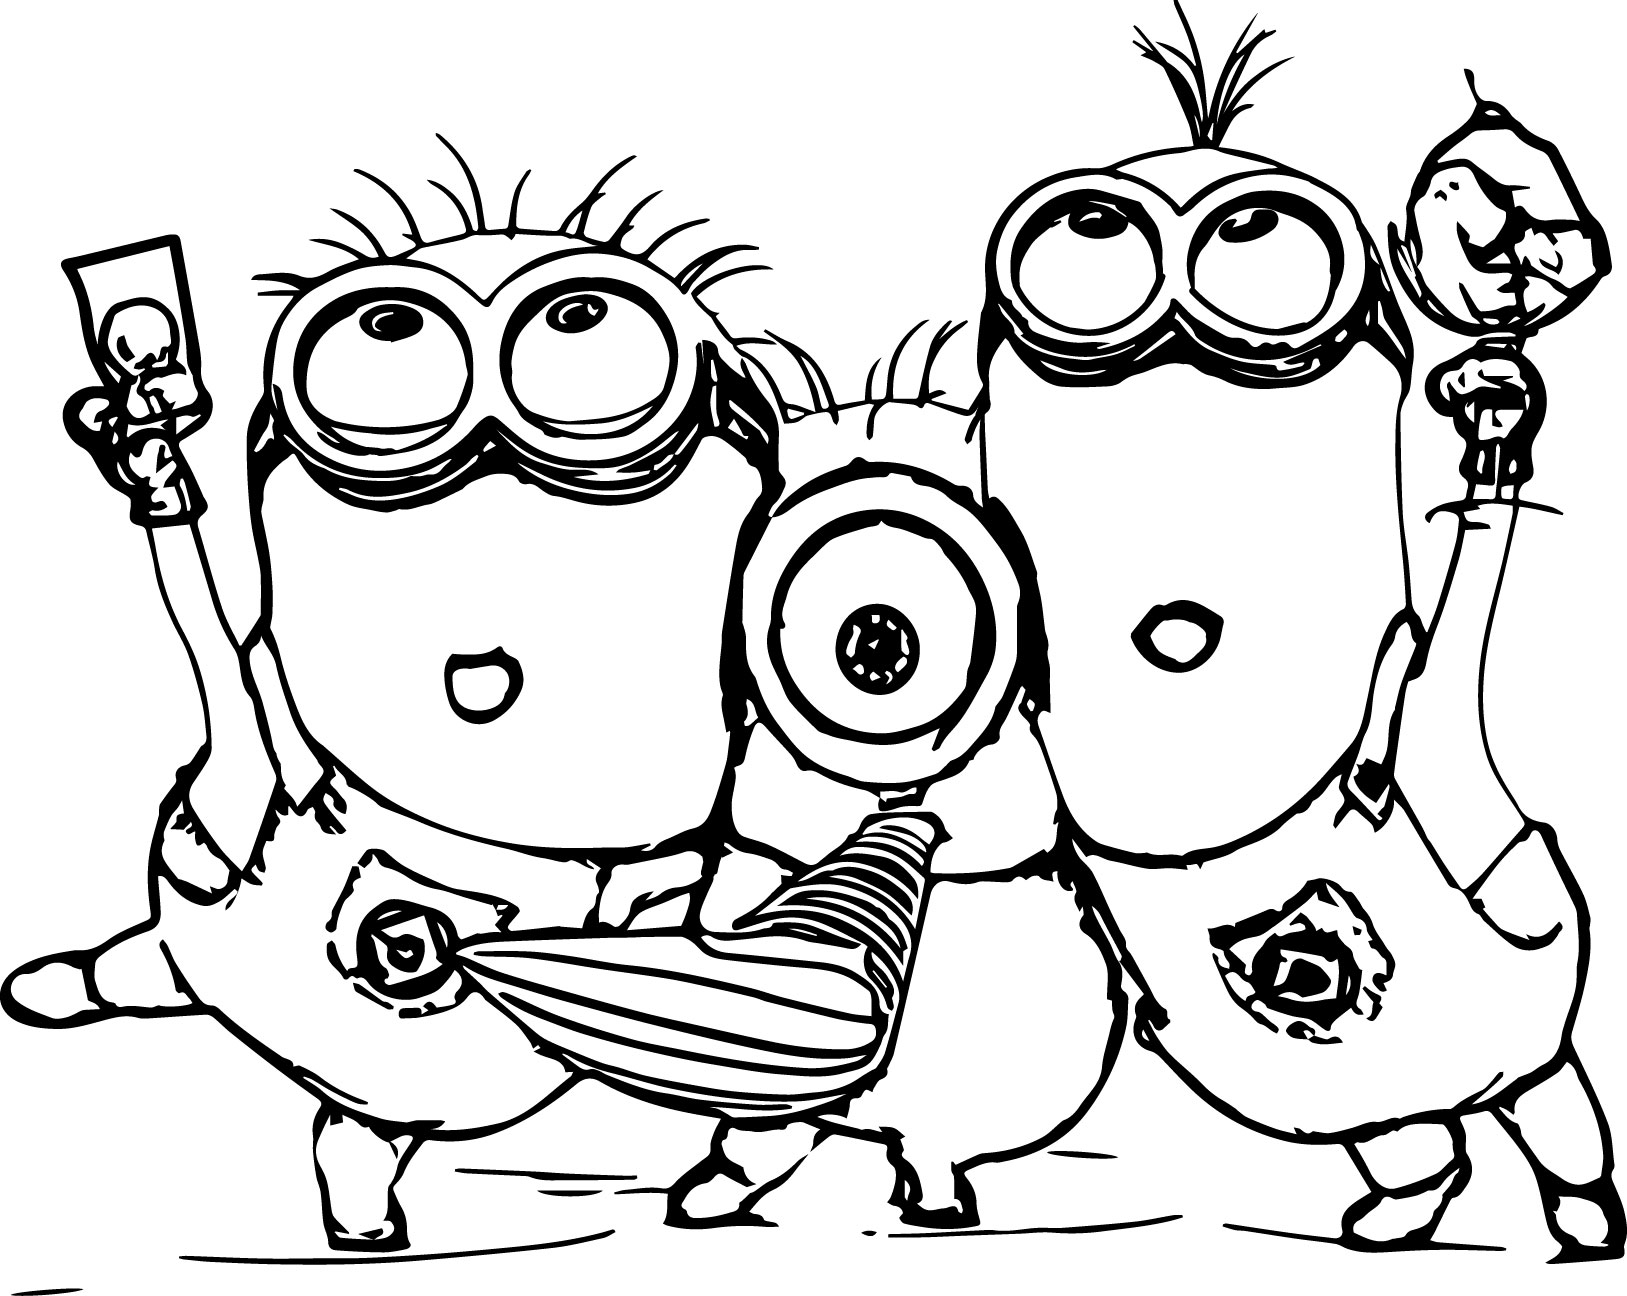 printable minions collection of minions clipart free download best minions minions printable